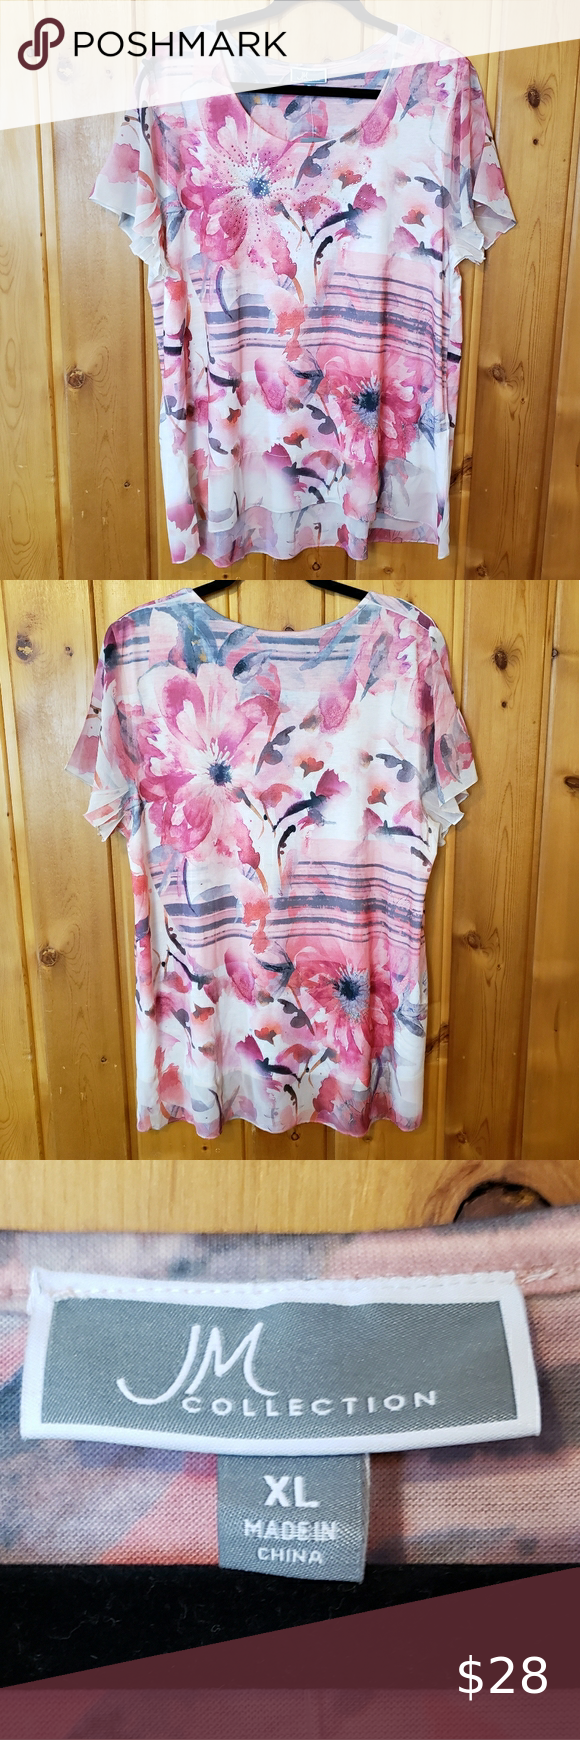 JM Collection Sheer Overlay Top